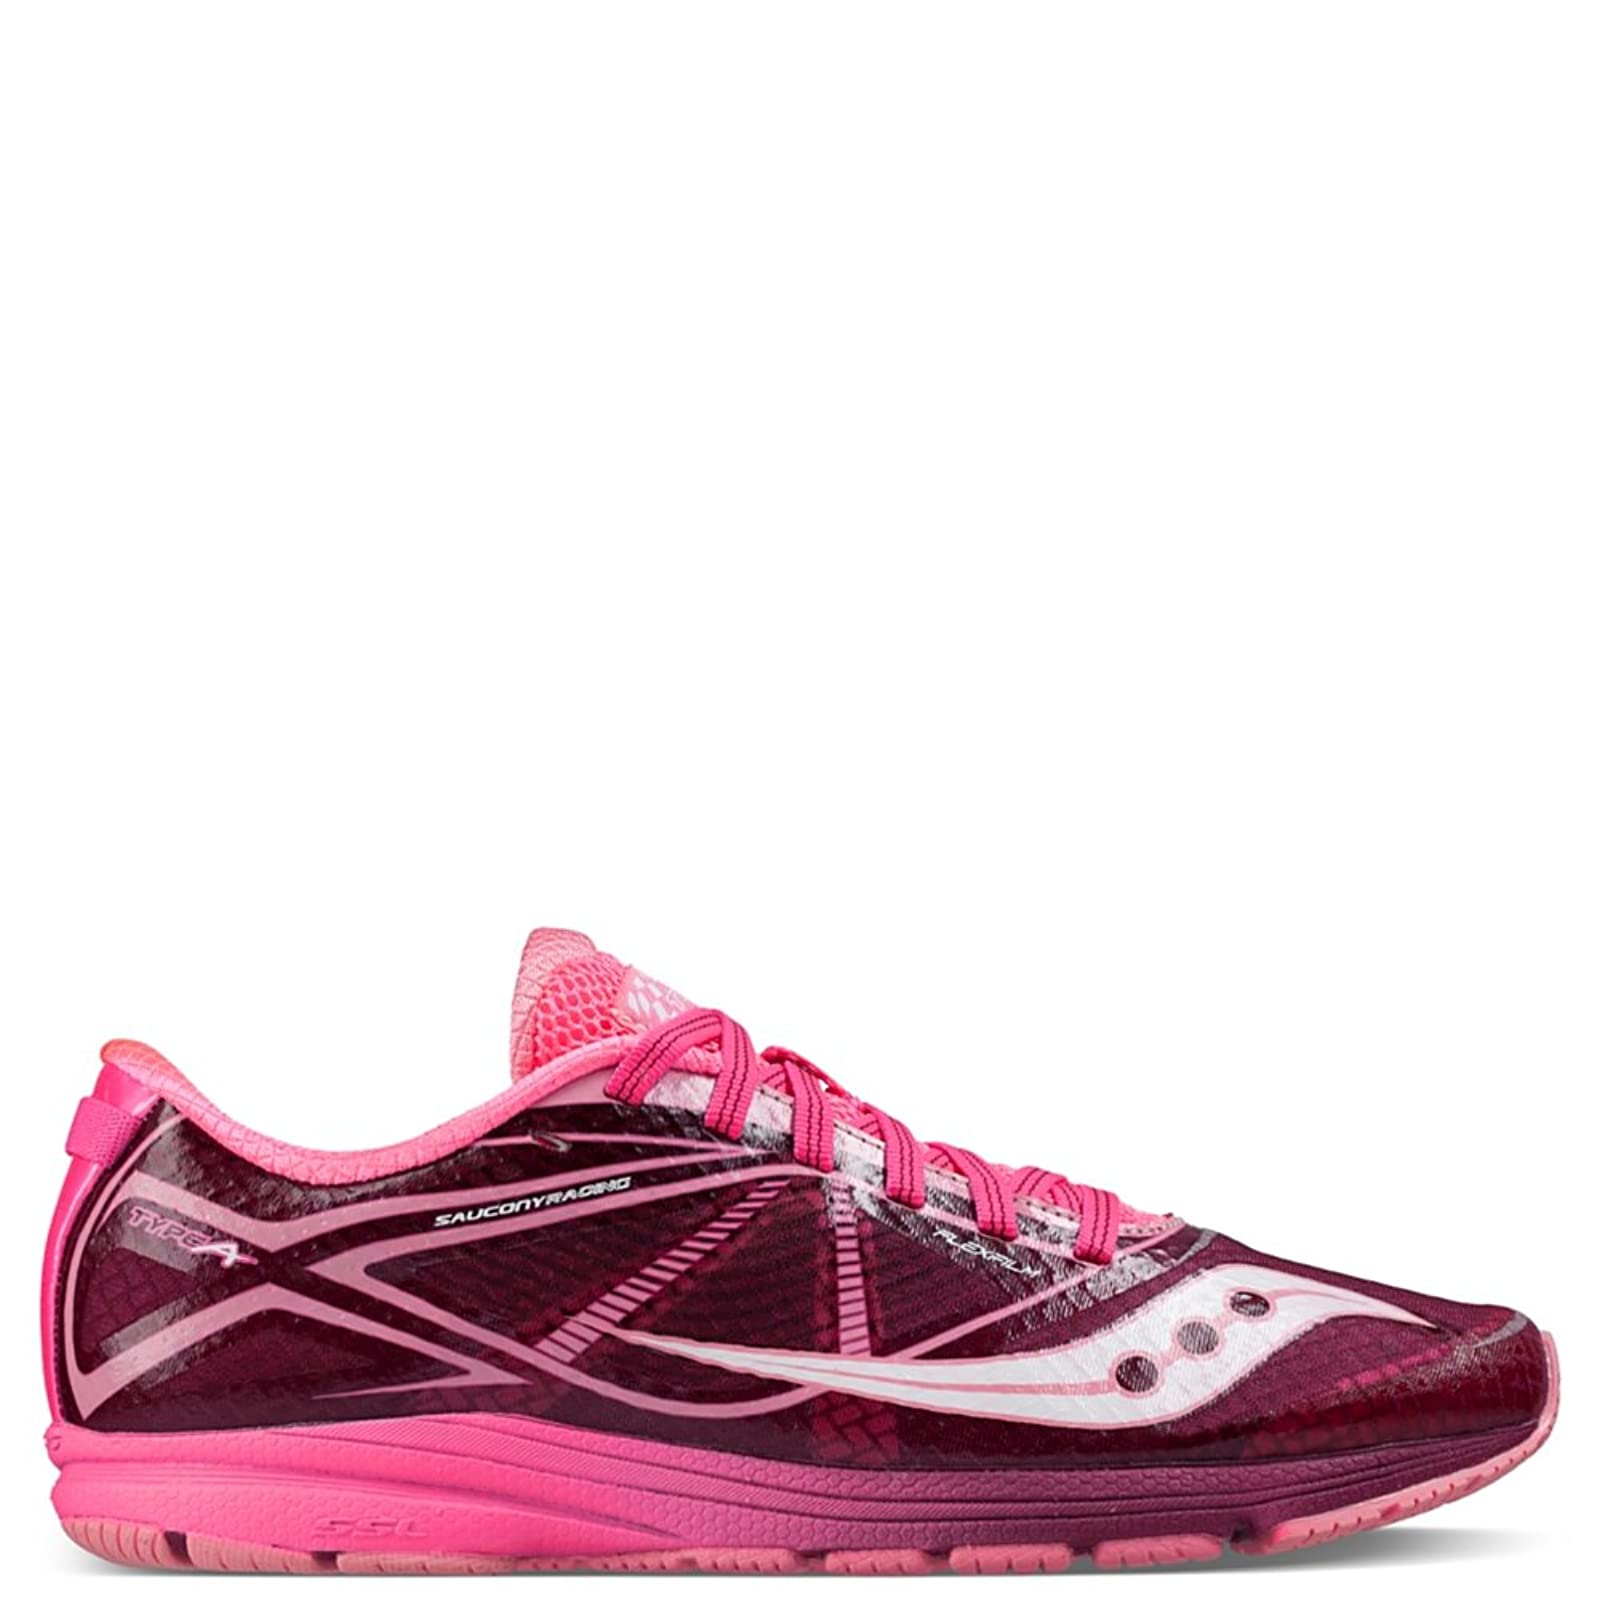 Saucony Type A Variation Pink | Purple Pink | Purple - 1